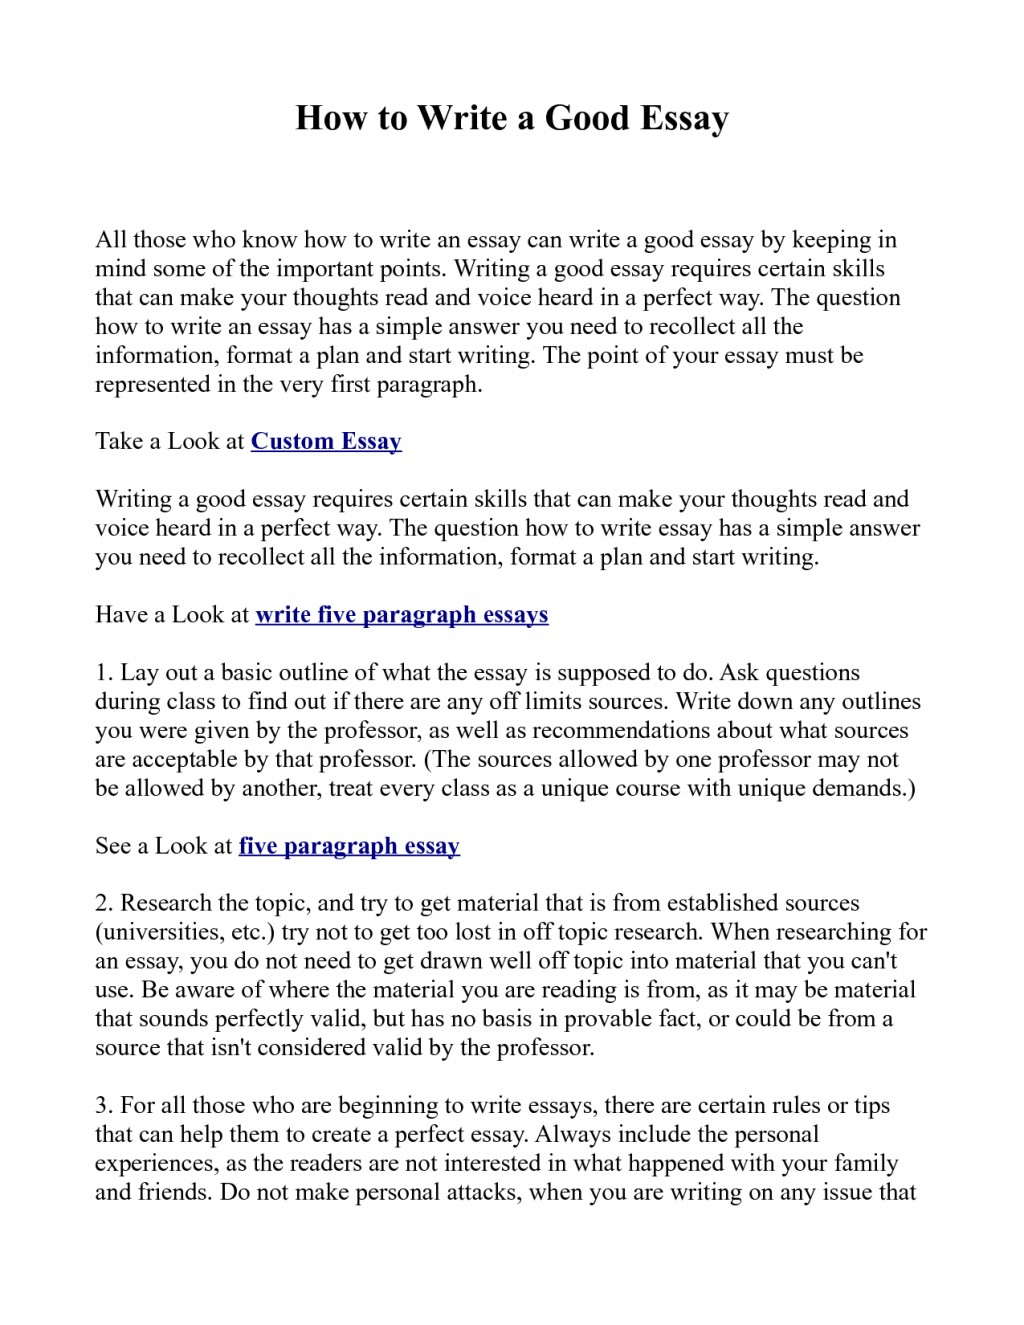 004 Exidscl How To Write Proper Essay Frightening A Good Format Successful Introduction Large